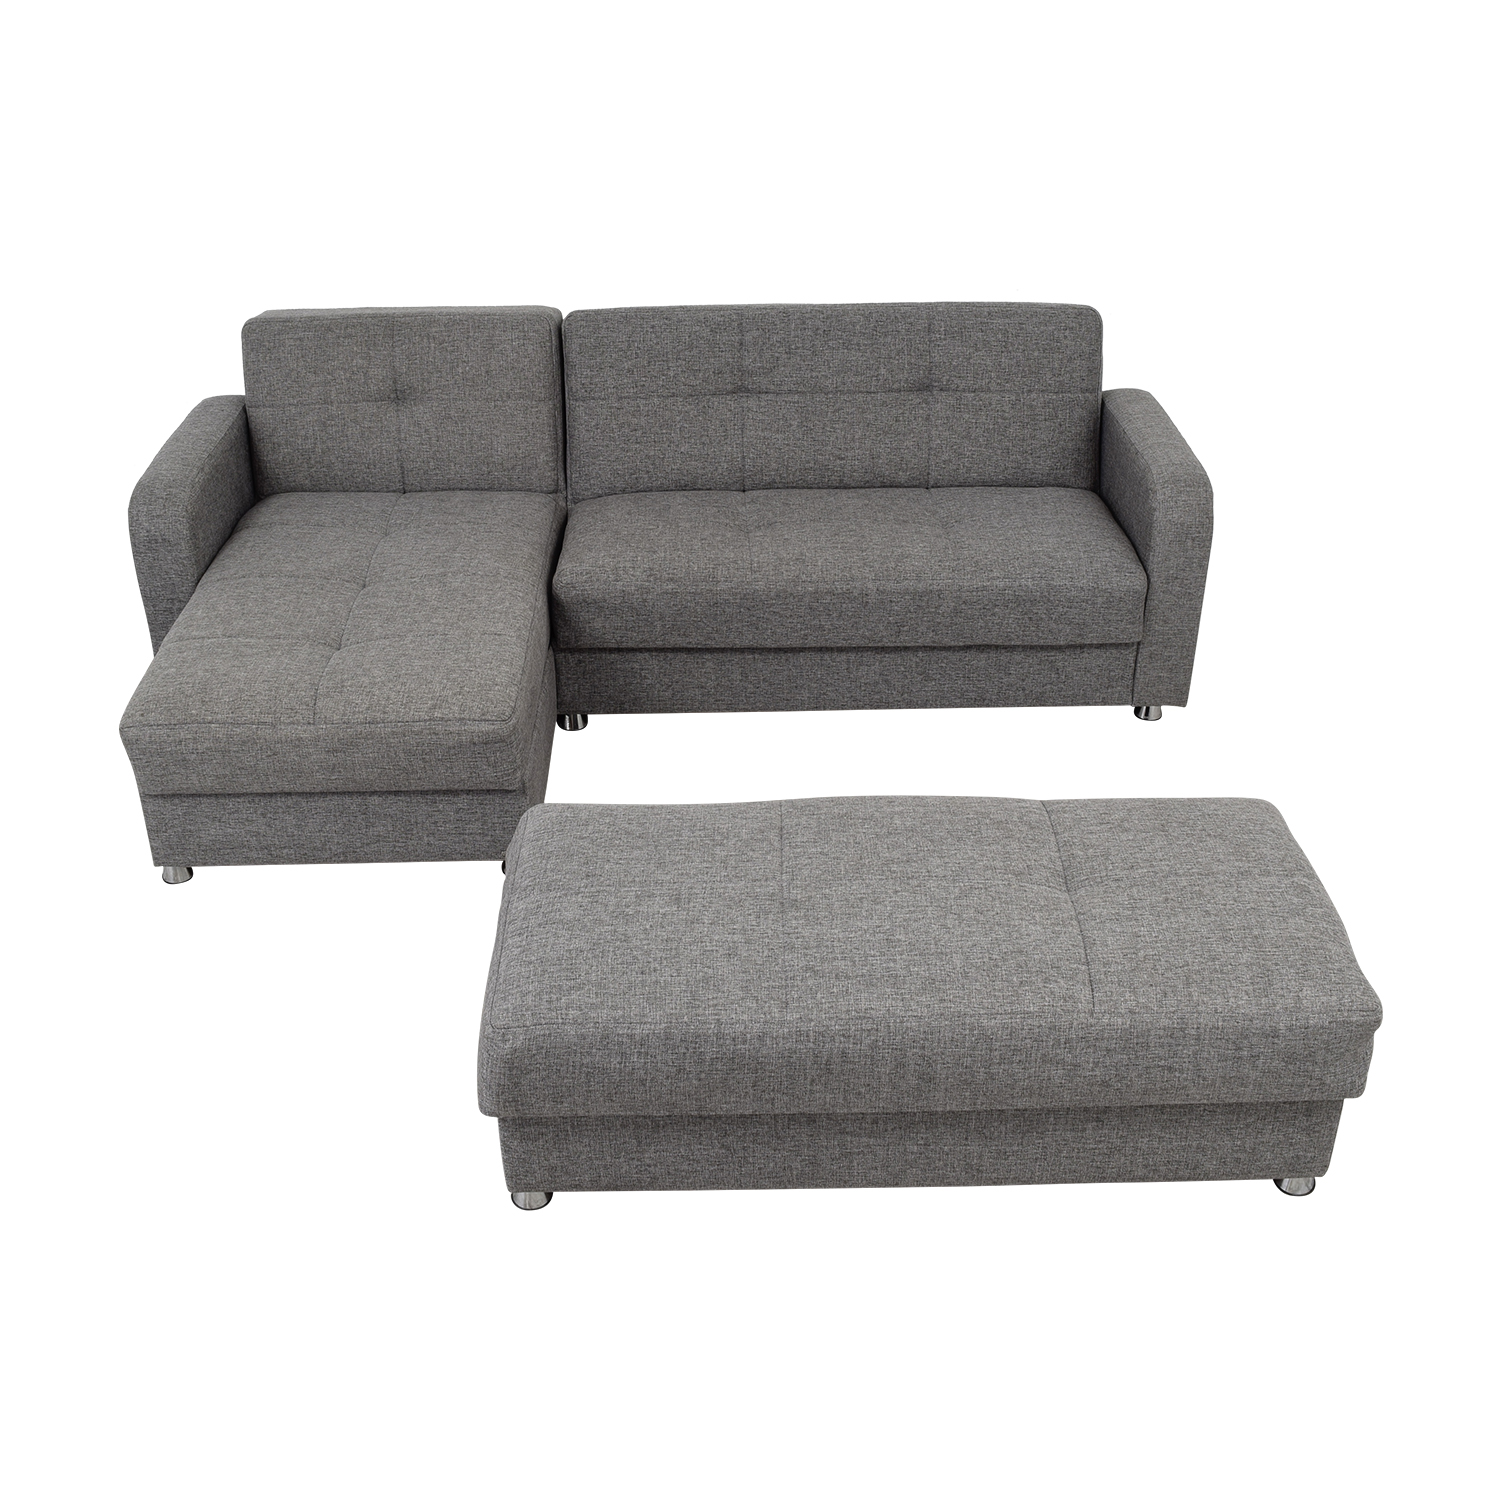 Prime 54 Off Istikbal Istikbal Grey Convertible Sectional Sofa With Ottoman Bench Sofas Gmtry Best Dining Table And Chair Ideas Images Gmtryco